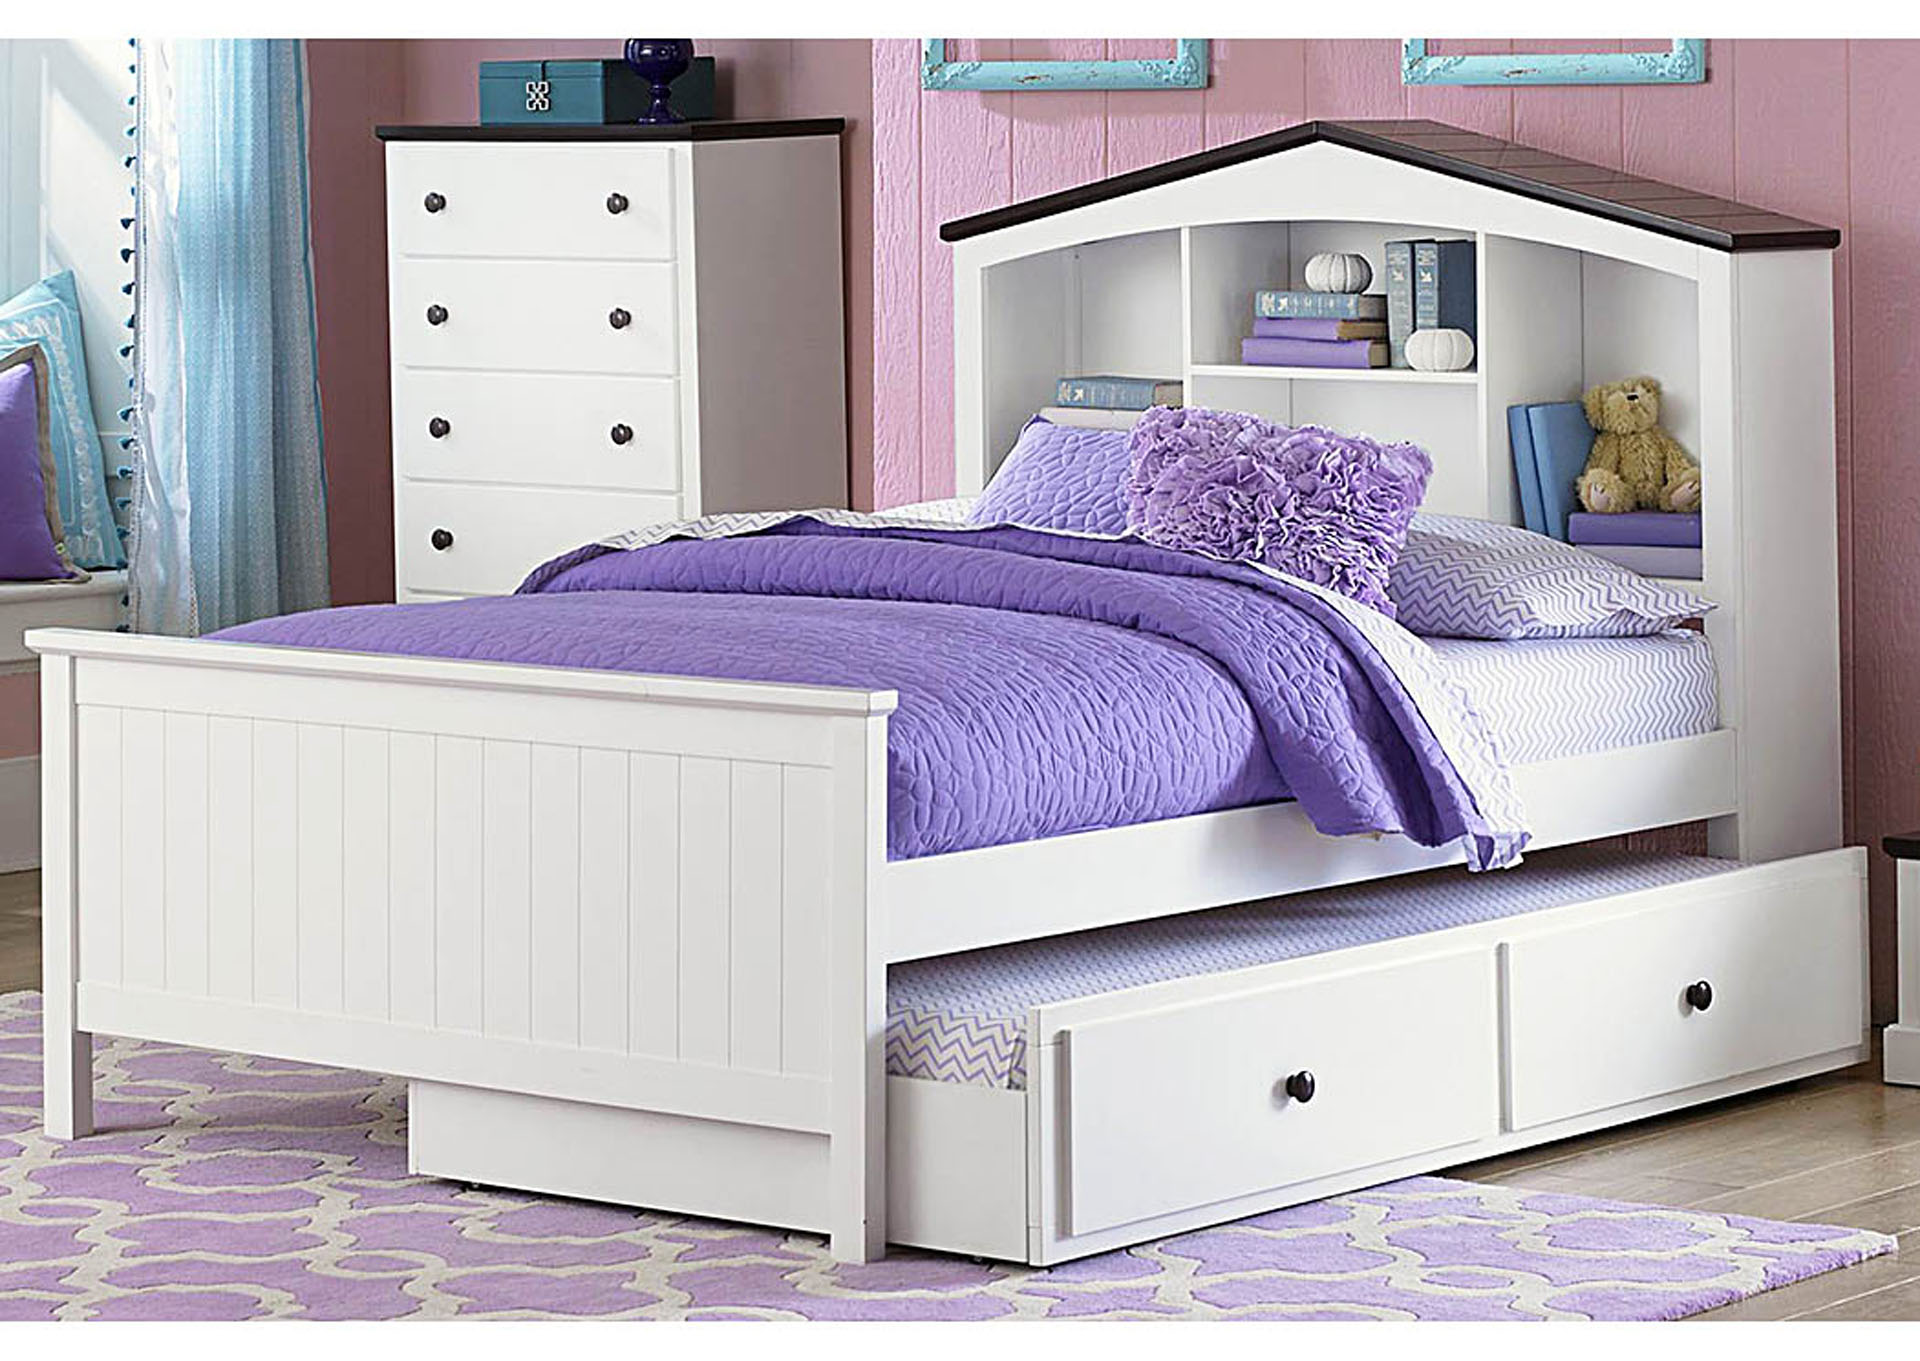 Lark Metal Trundle Bed,Homelegance